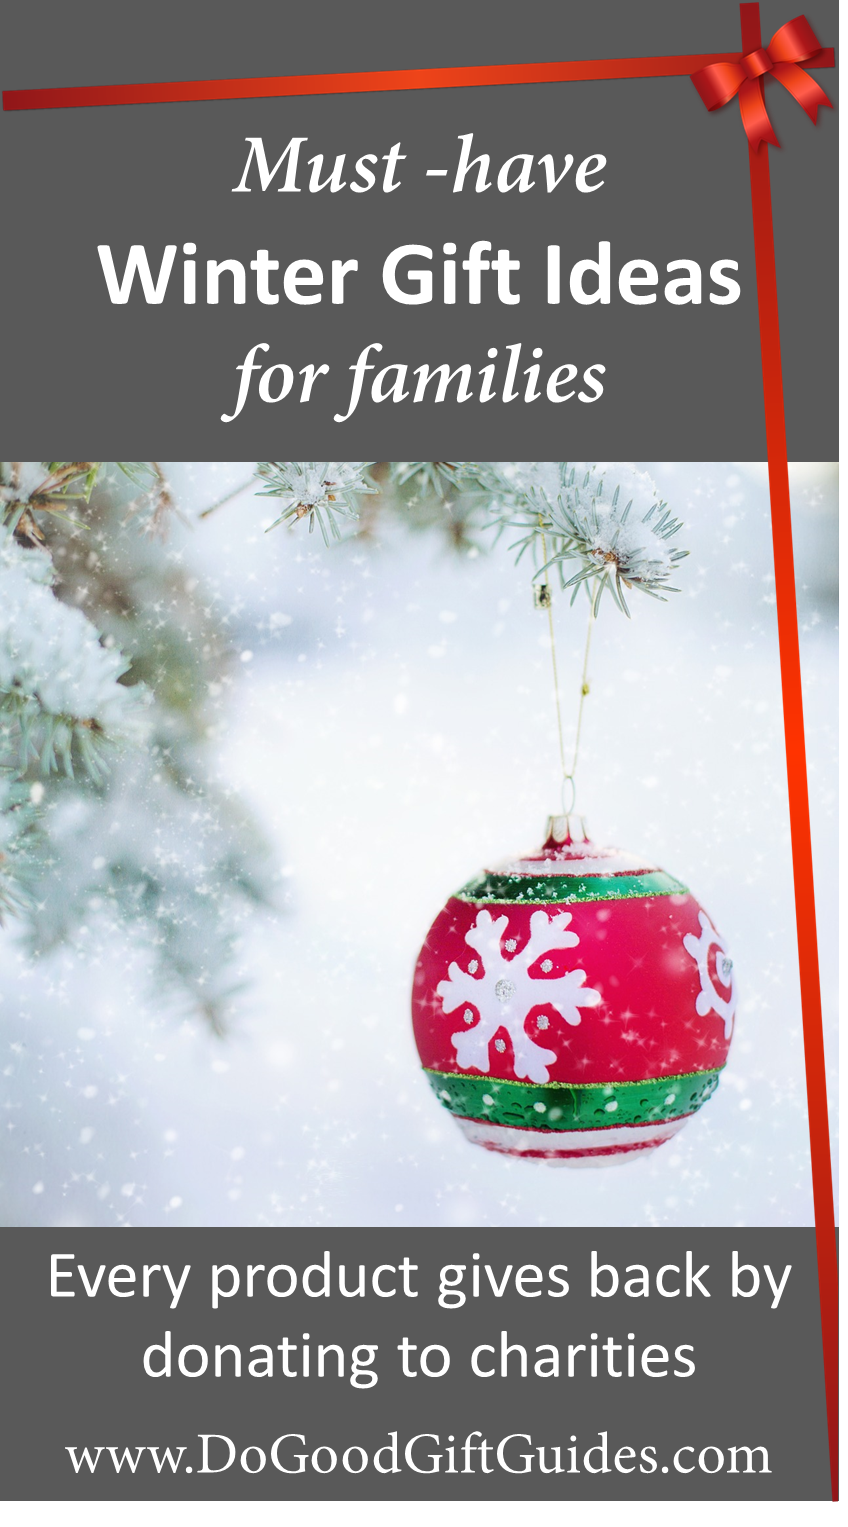 All items in our gift guides give back by donating to charities that ...